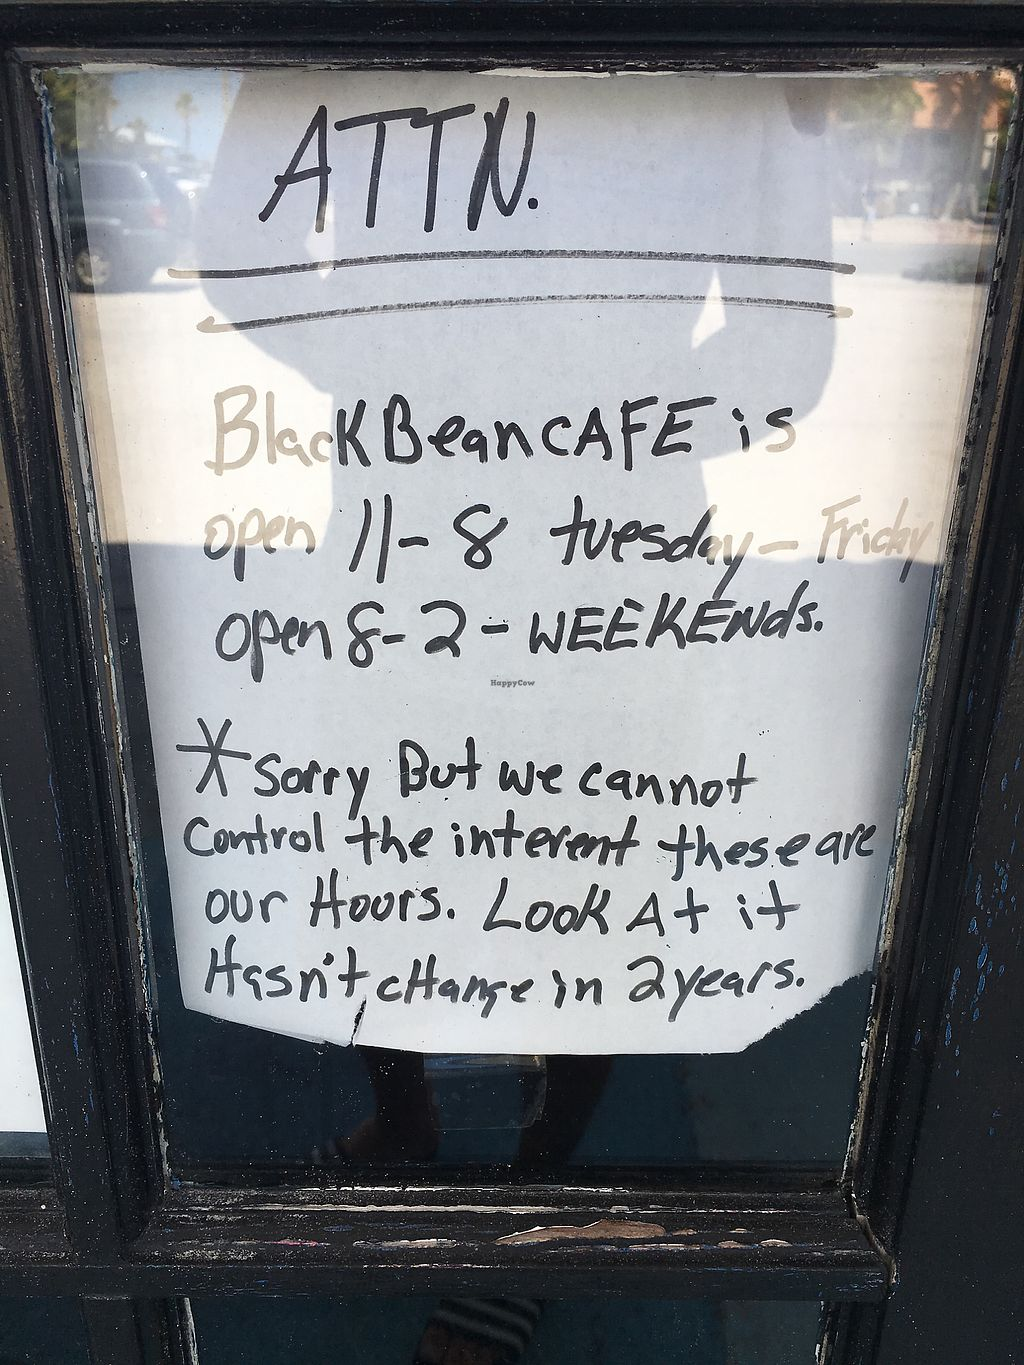 """Photo of Black Bean Cafe  by <a href=""""/members/profile/DanielAbrahamsson"""">DanielAbrahamsson</a> <br/>closed mondays <br/> July 12, 2017  - <a href='/contact/abuse/image/74427/279350'>Report</a>"""